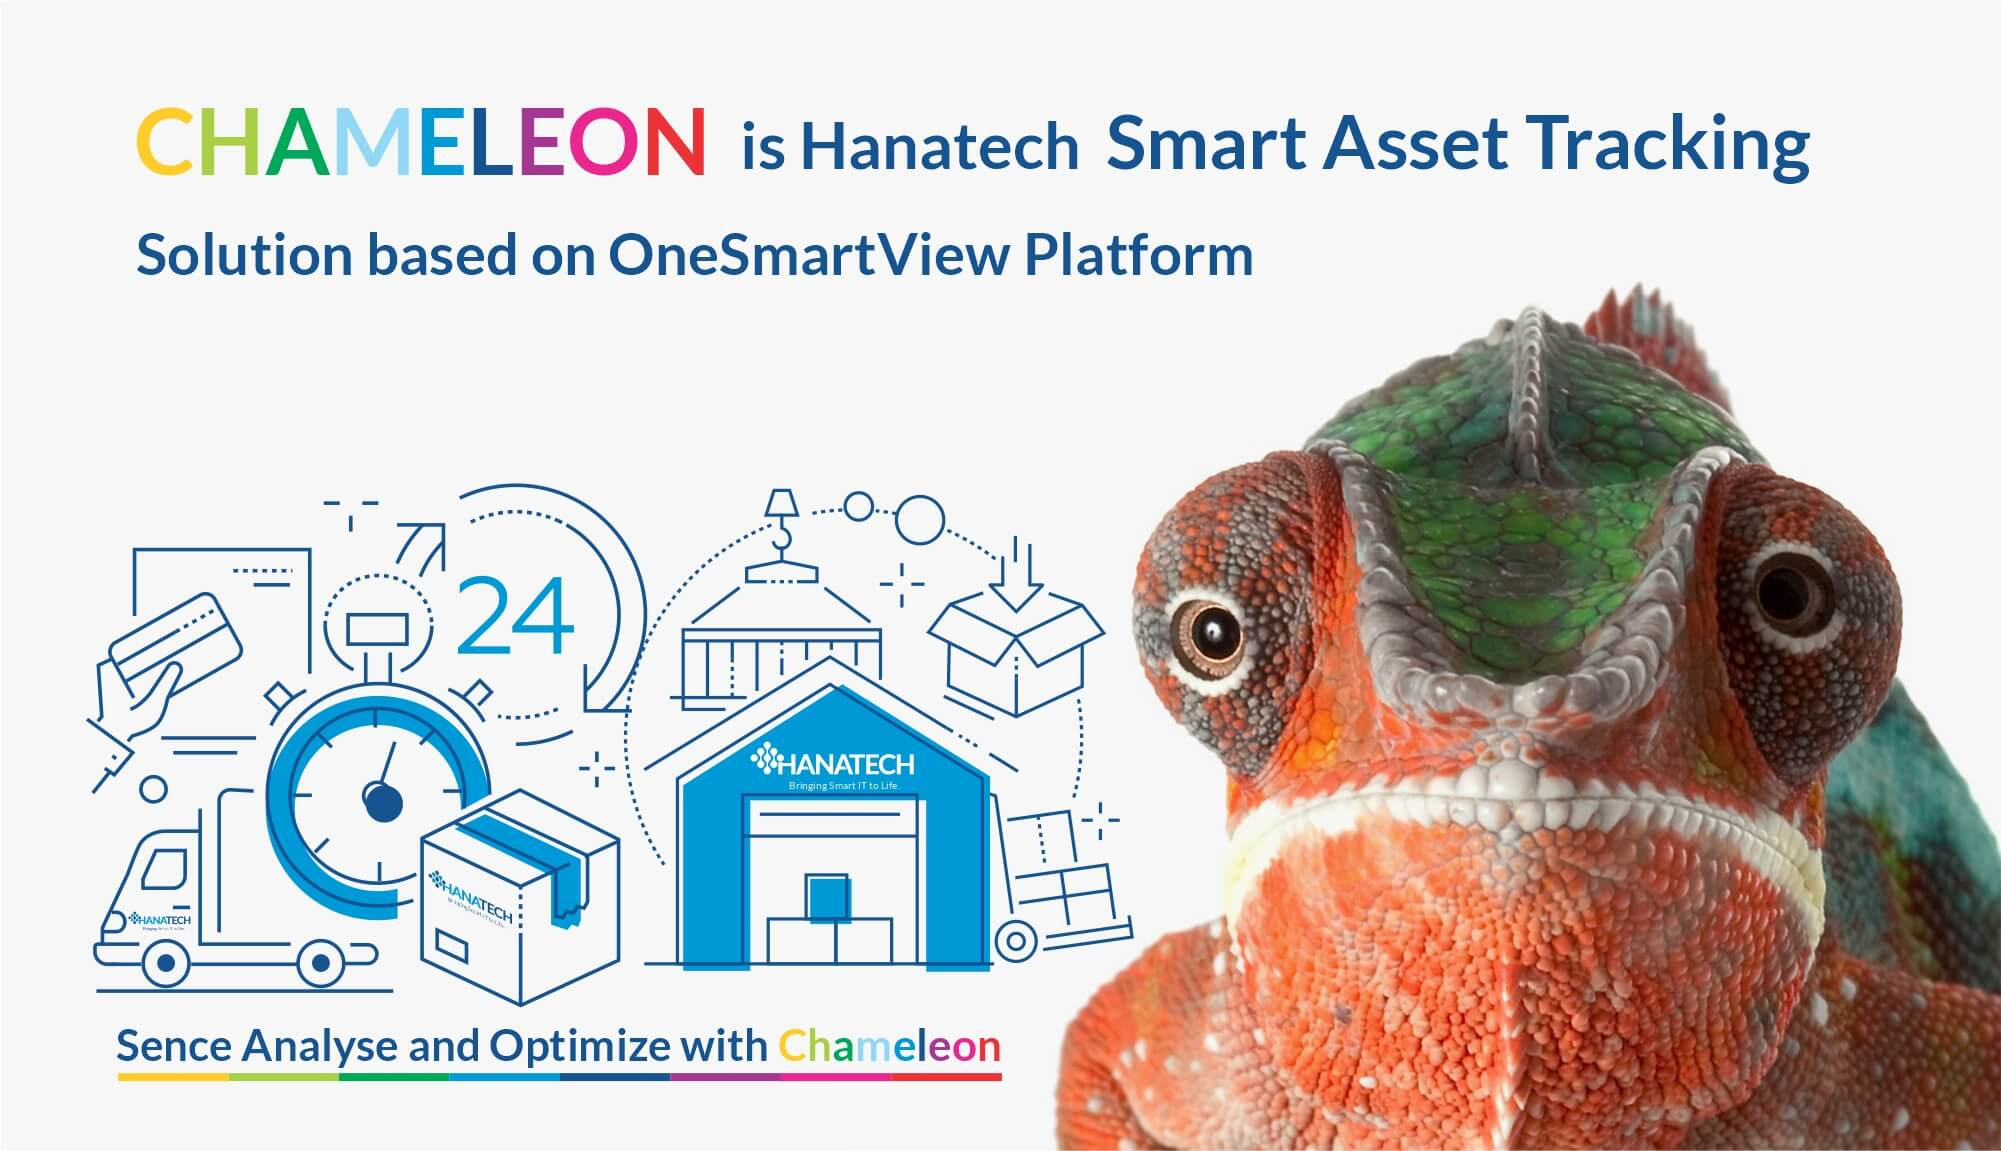 Chameleon is Hanatech SmartAsset Tracking Solution